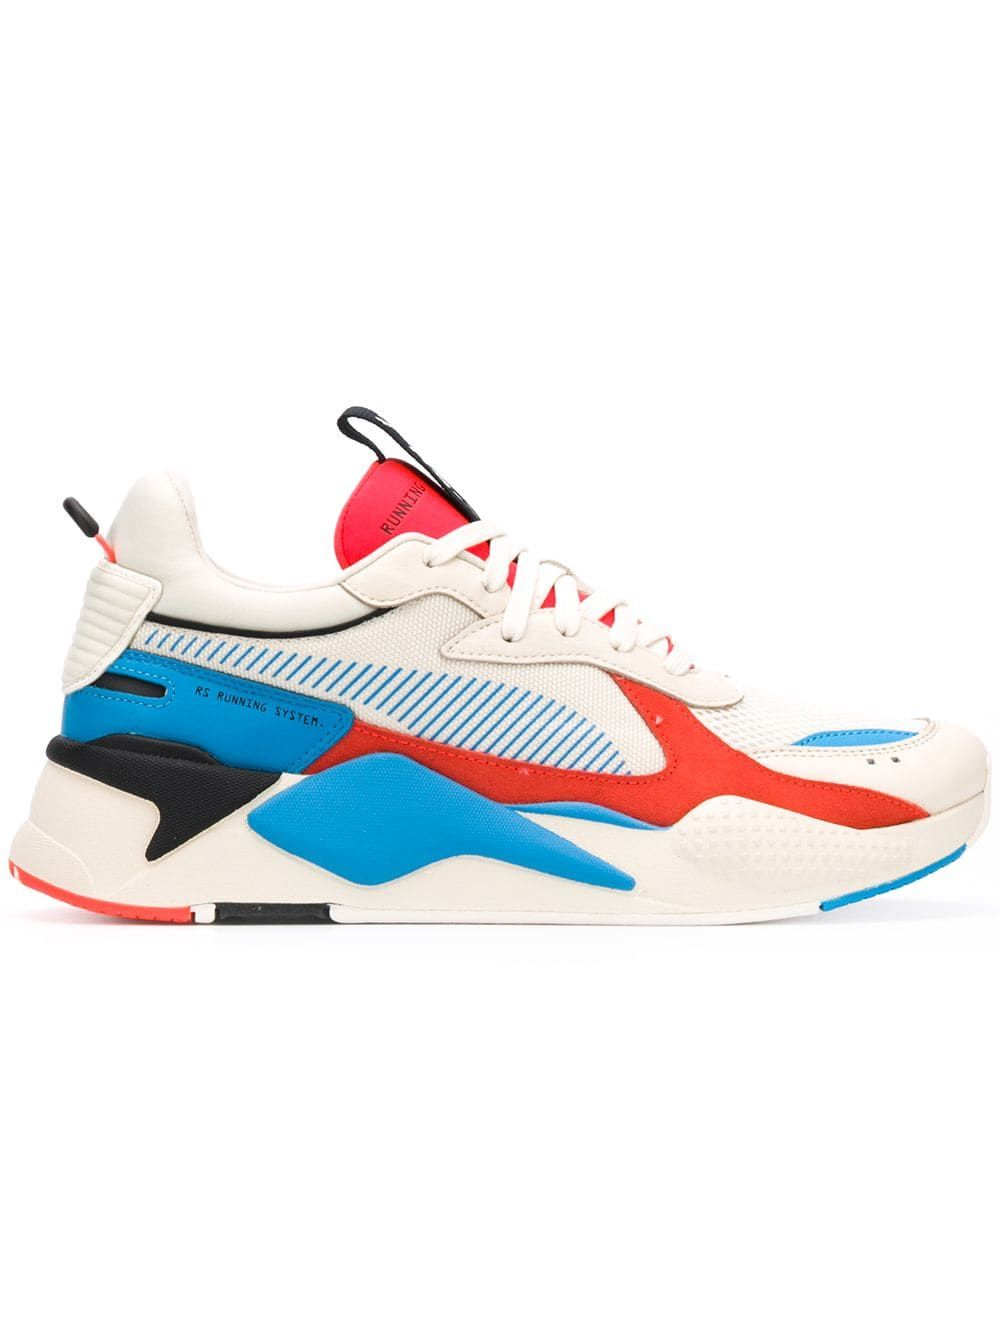 237ff6eaba8e PUMA PUMA 36957901 - NEUTRALS.  puma  shoes